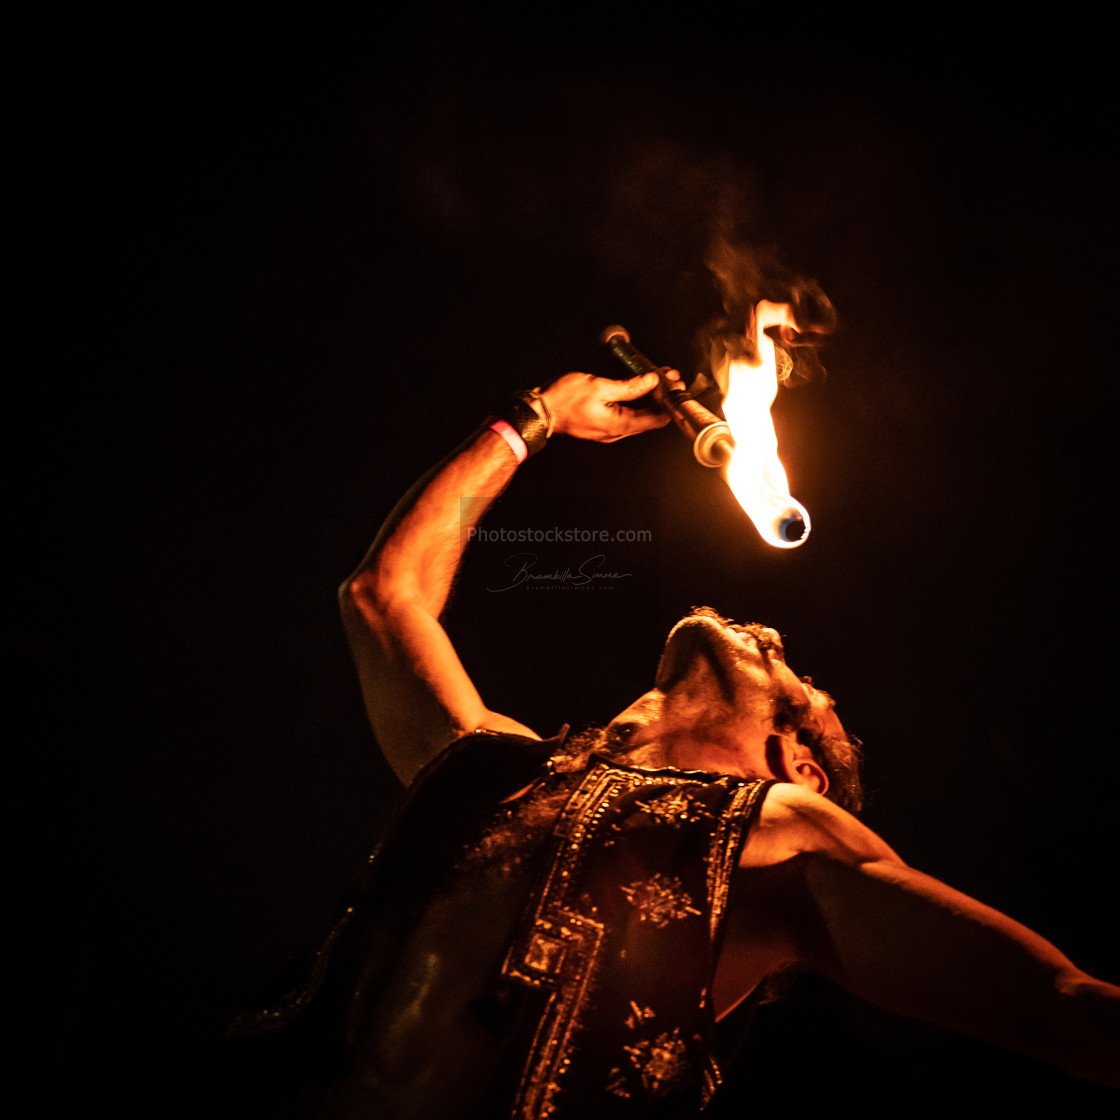 """Fire-eater at Pollo Metal Fest (BG) 26-08-2018"" stock image"